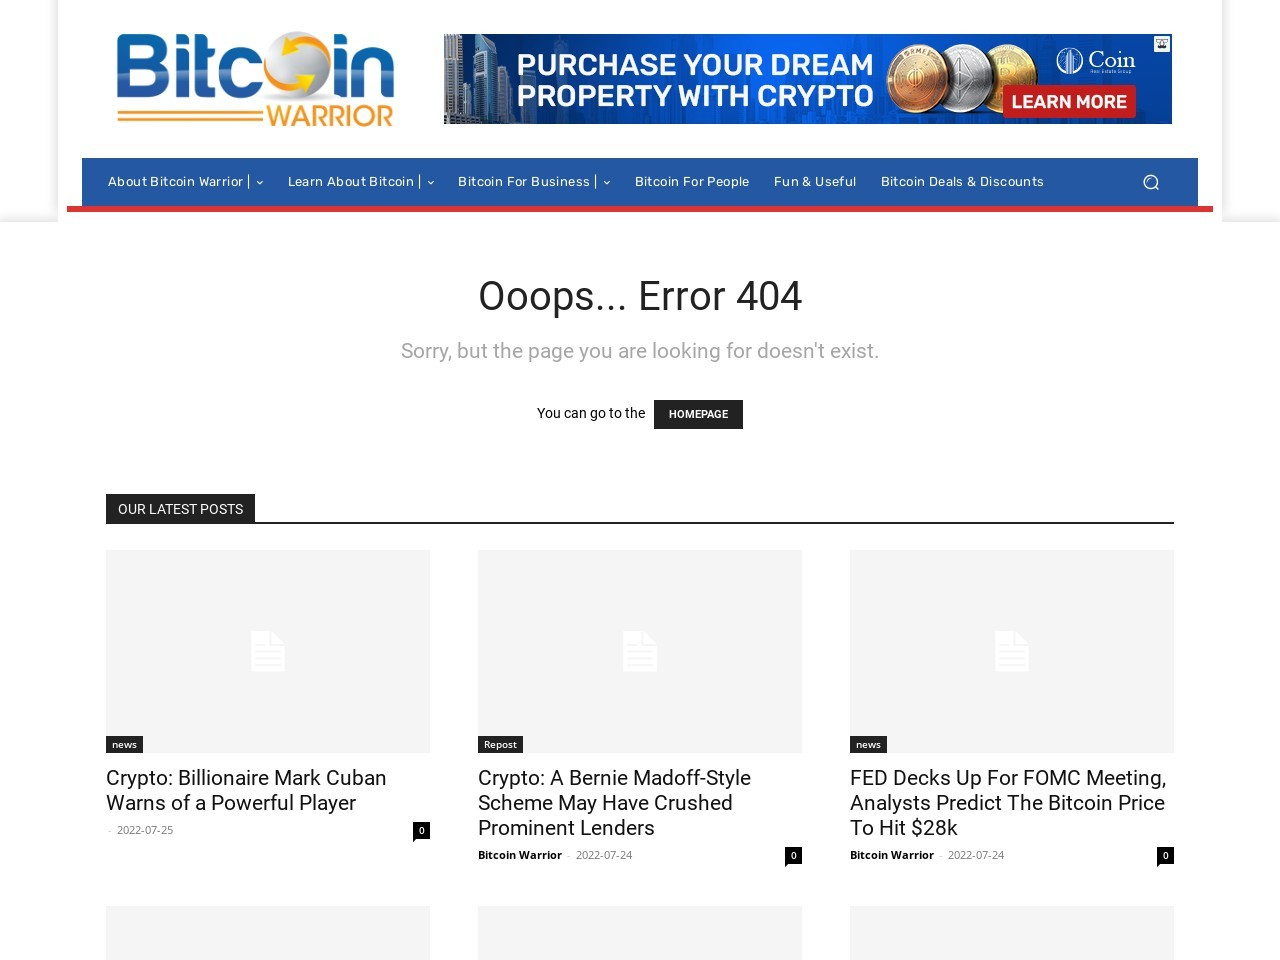 Analysts claim Bitcoin price to see a crash soon